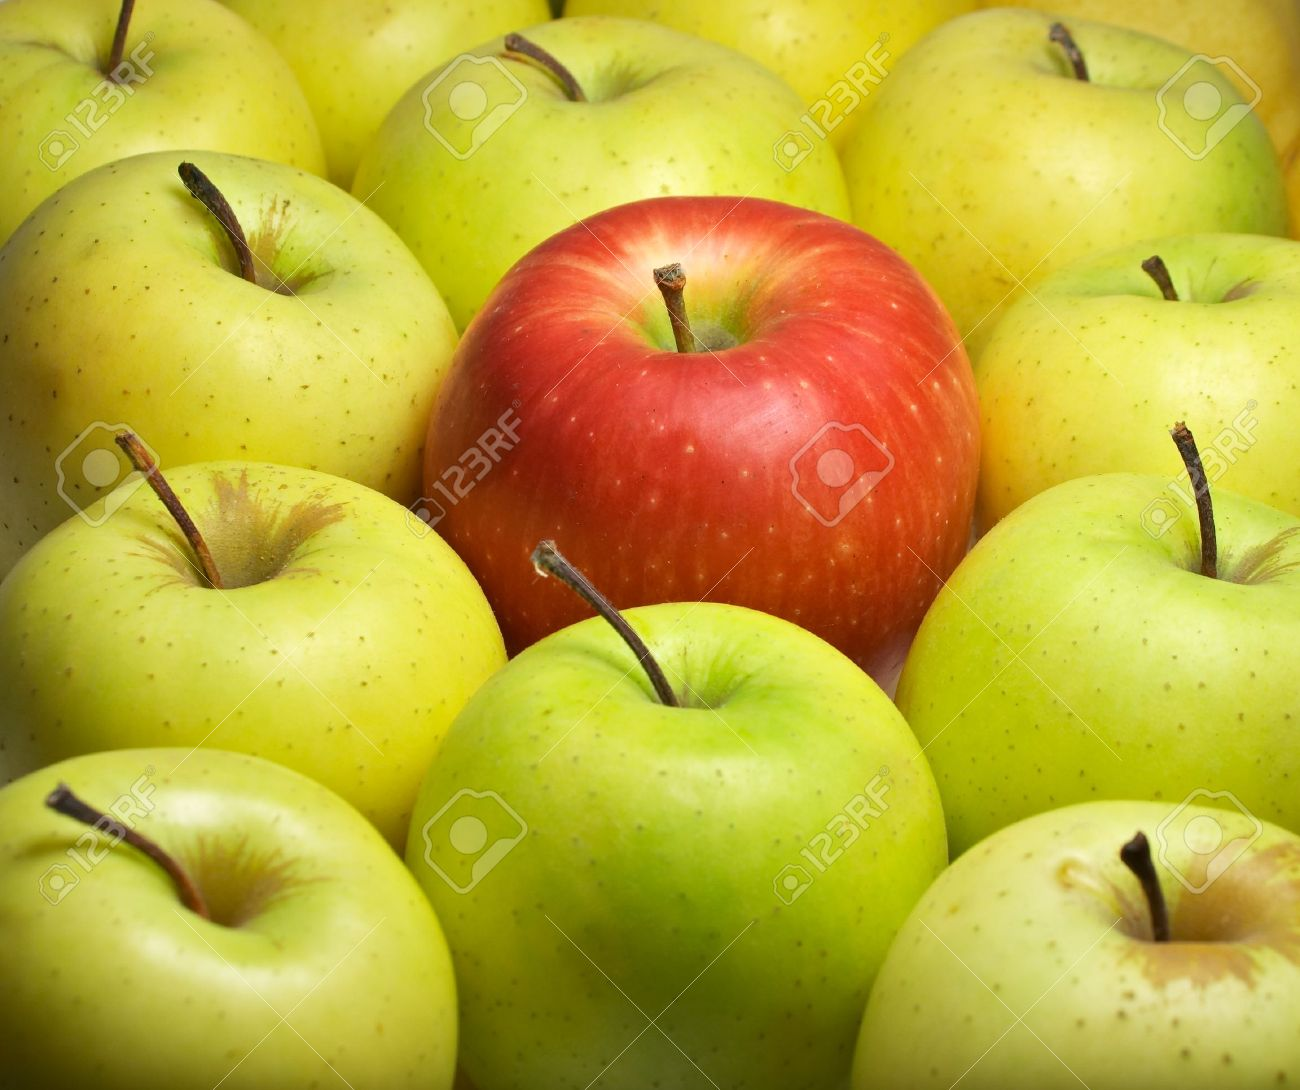 Individual - one different - closeup of red apple among yellow-green apples - 5865093